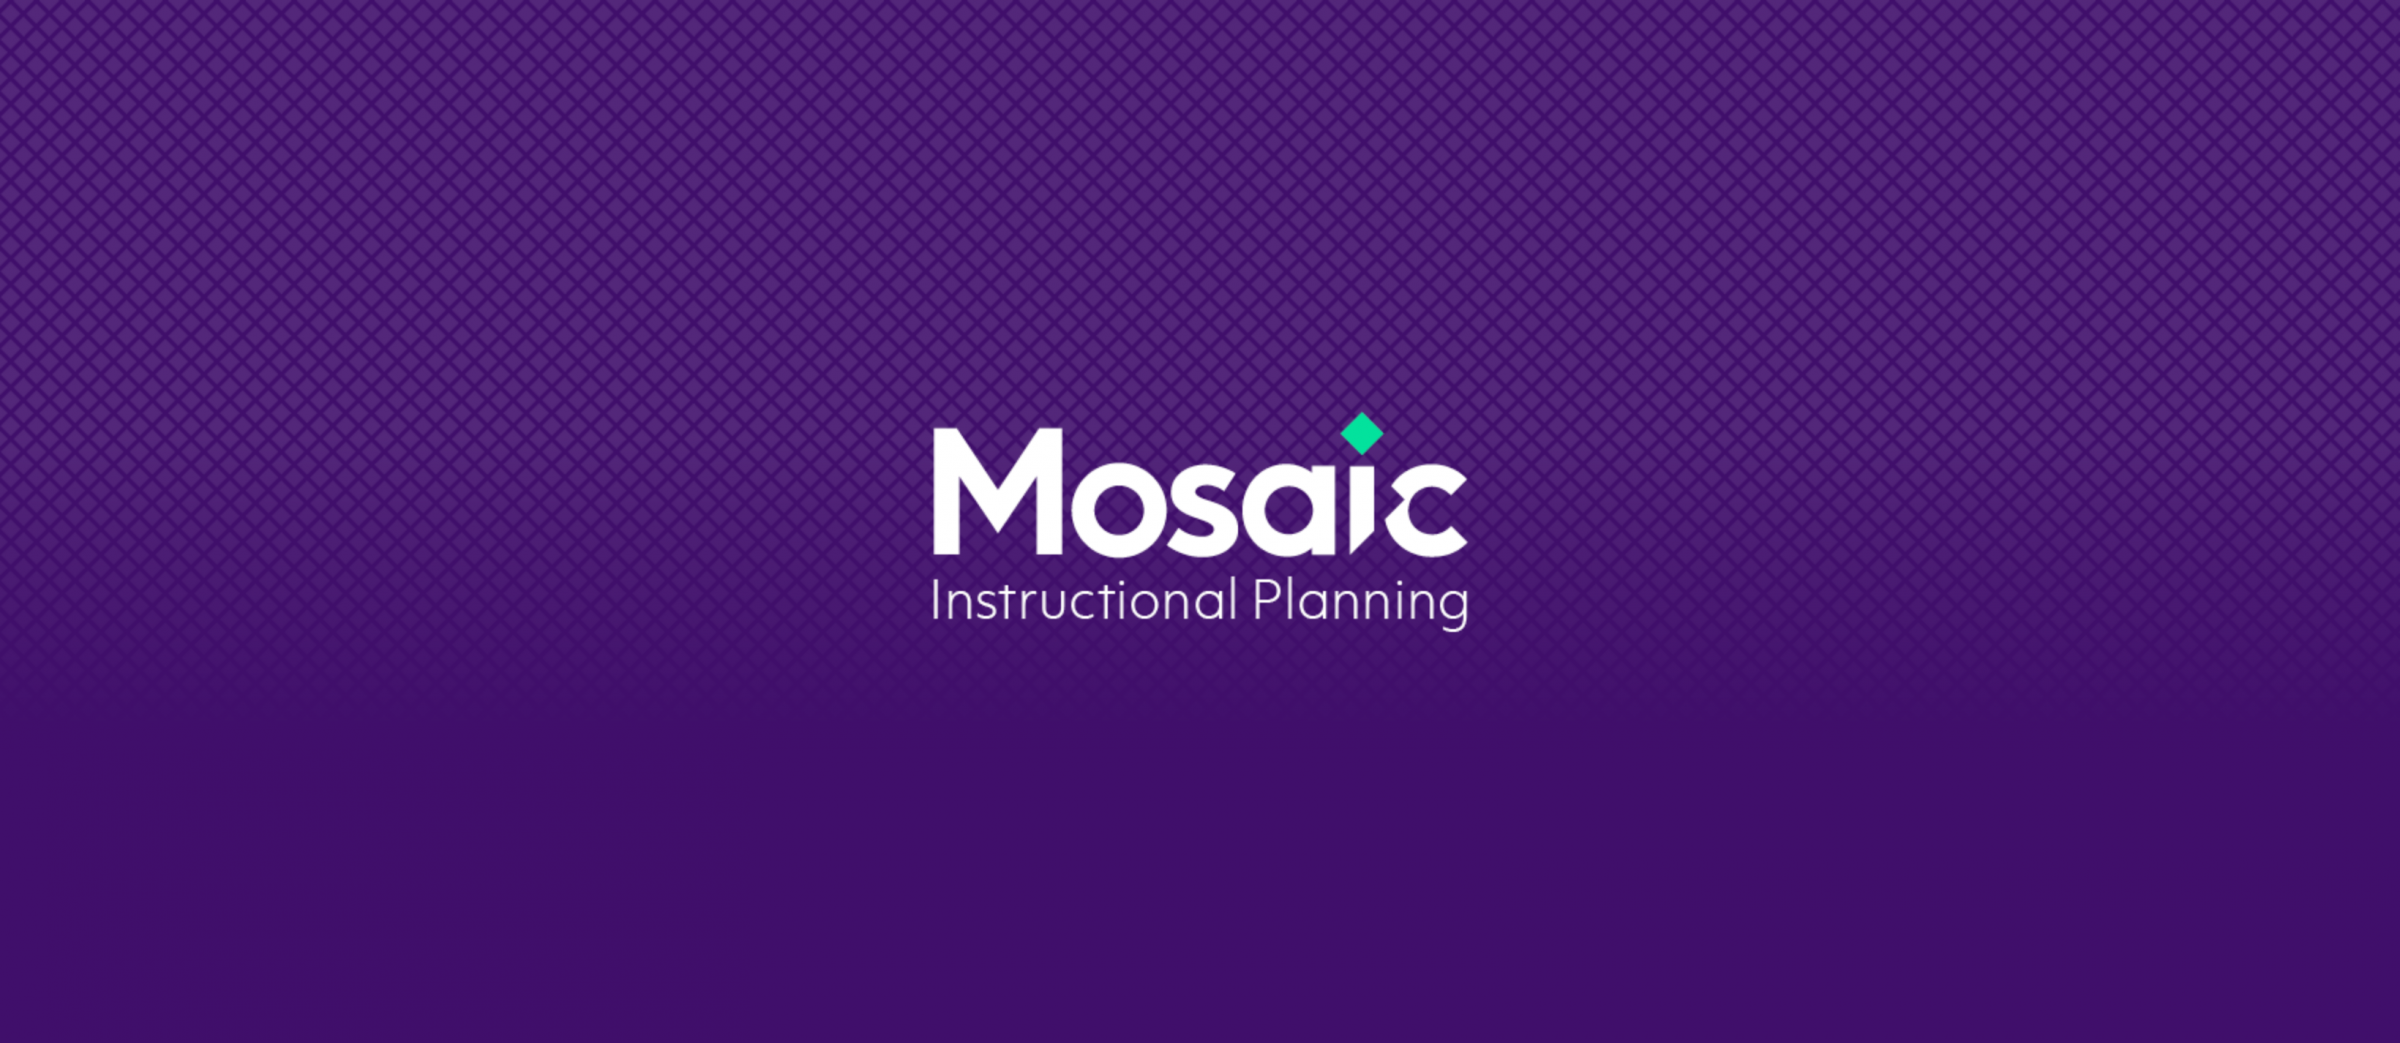 Mosaic Instructional Planning - Branding Agency Example - Mosaic Logo with Grid